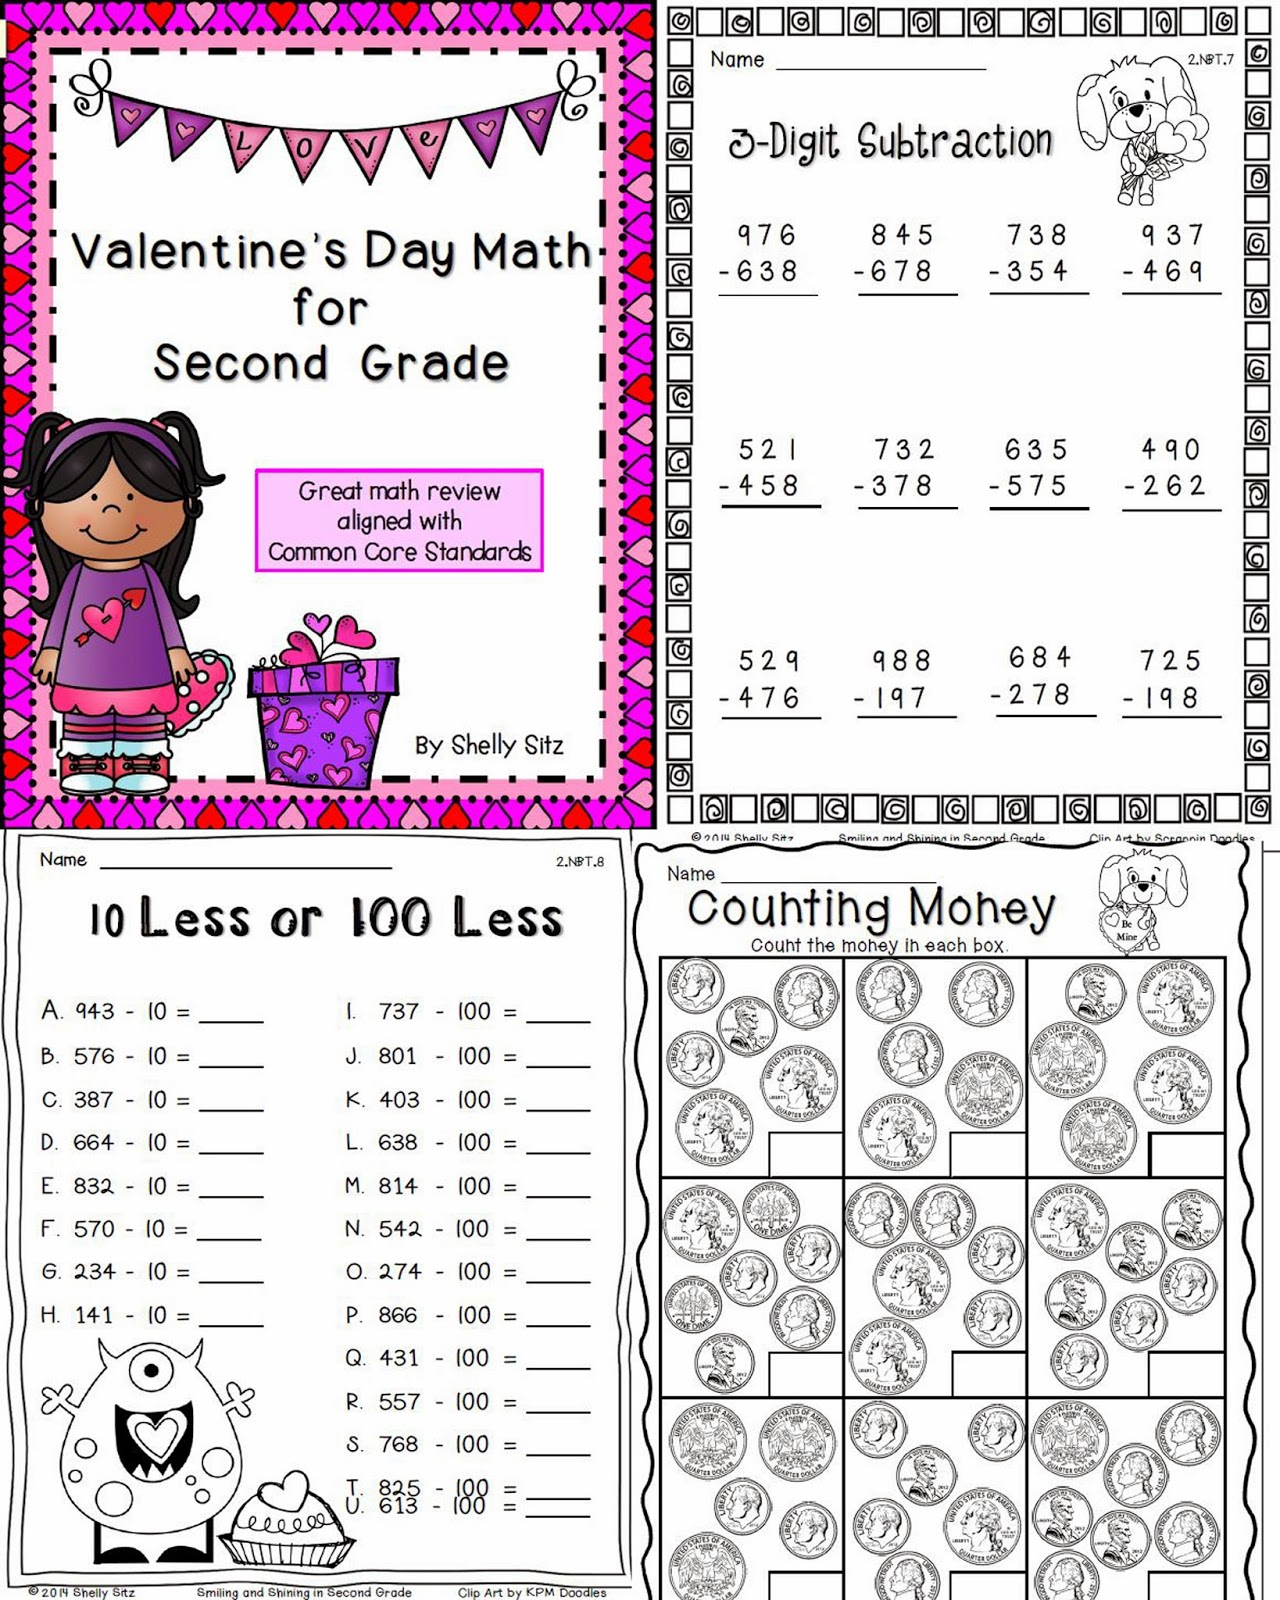 smiling and shining in second grade valentine 39 s math for second grade. Black Bedroom Furniture Sets. Home Design Ideas